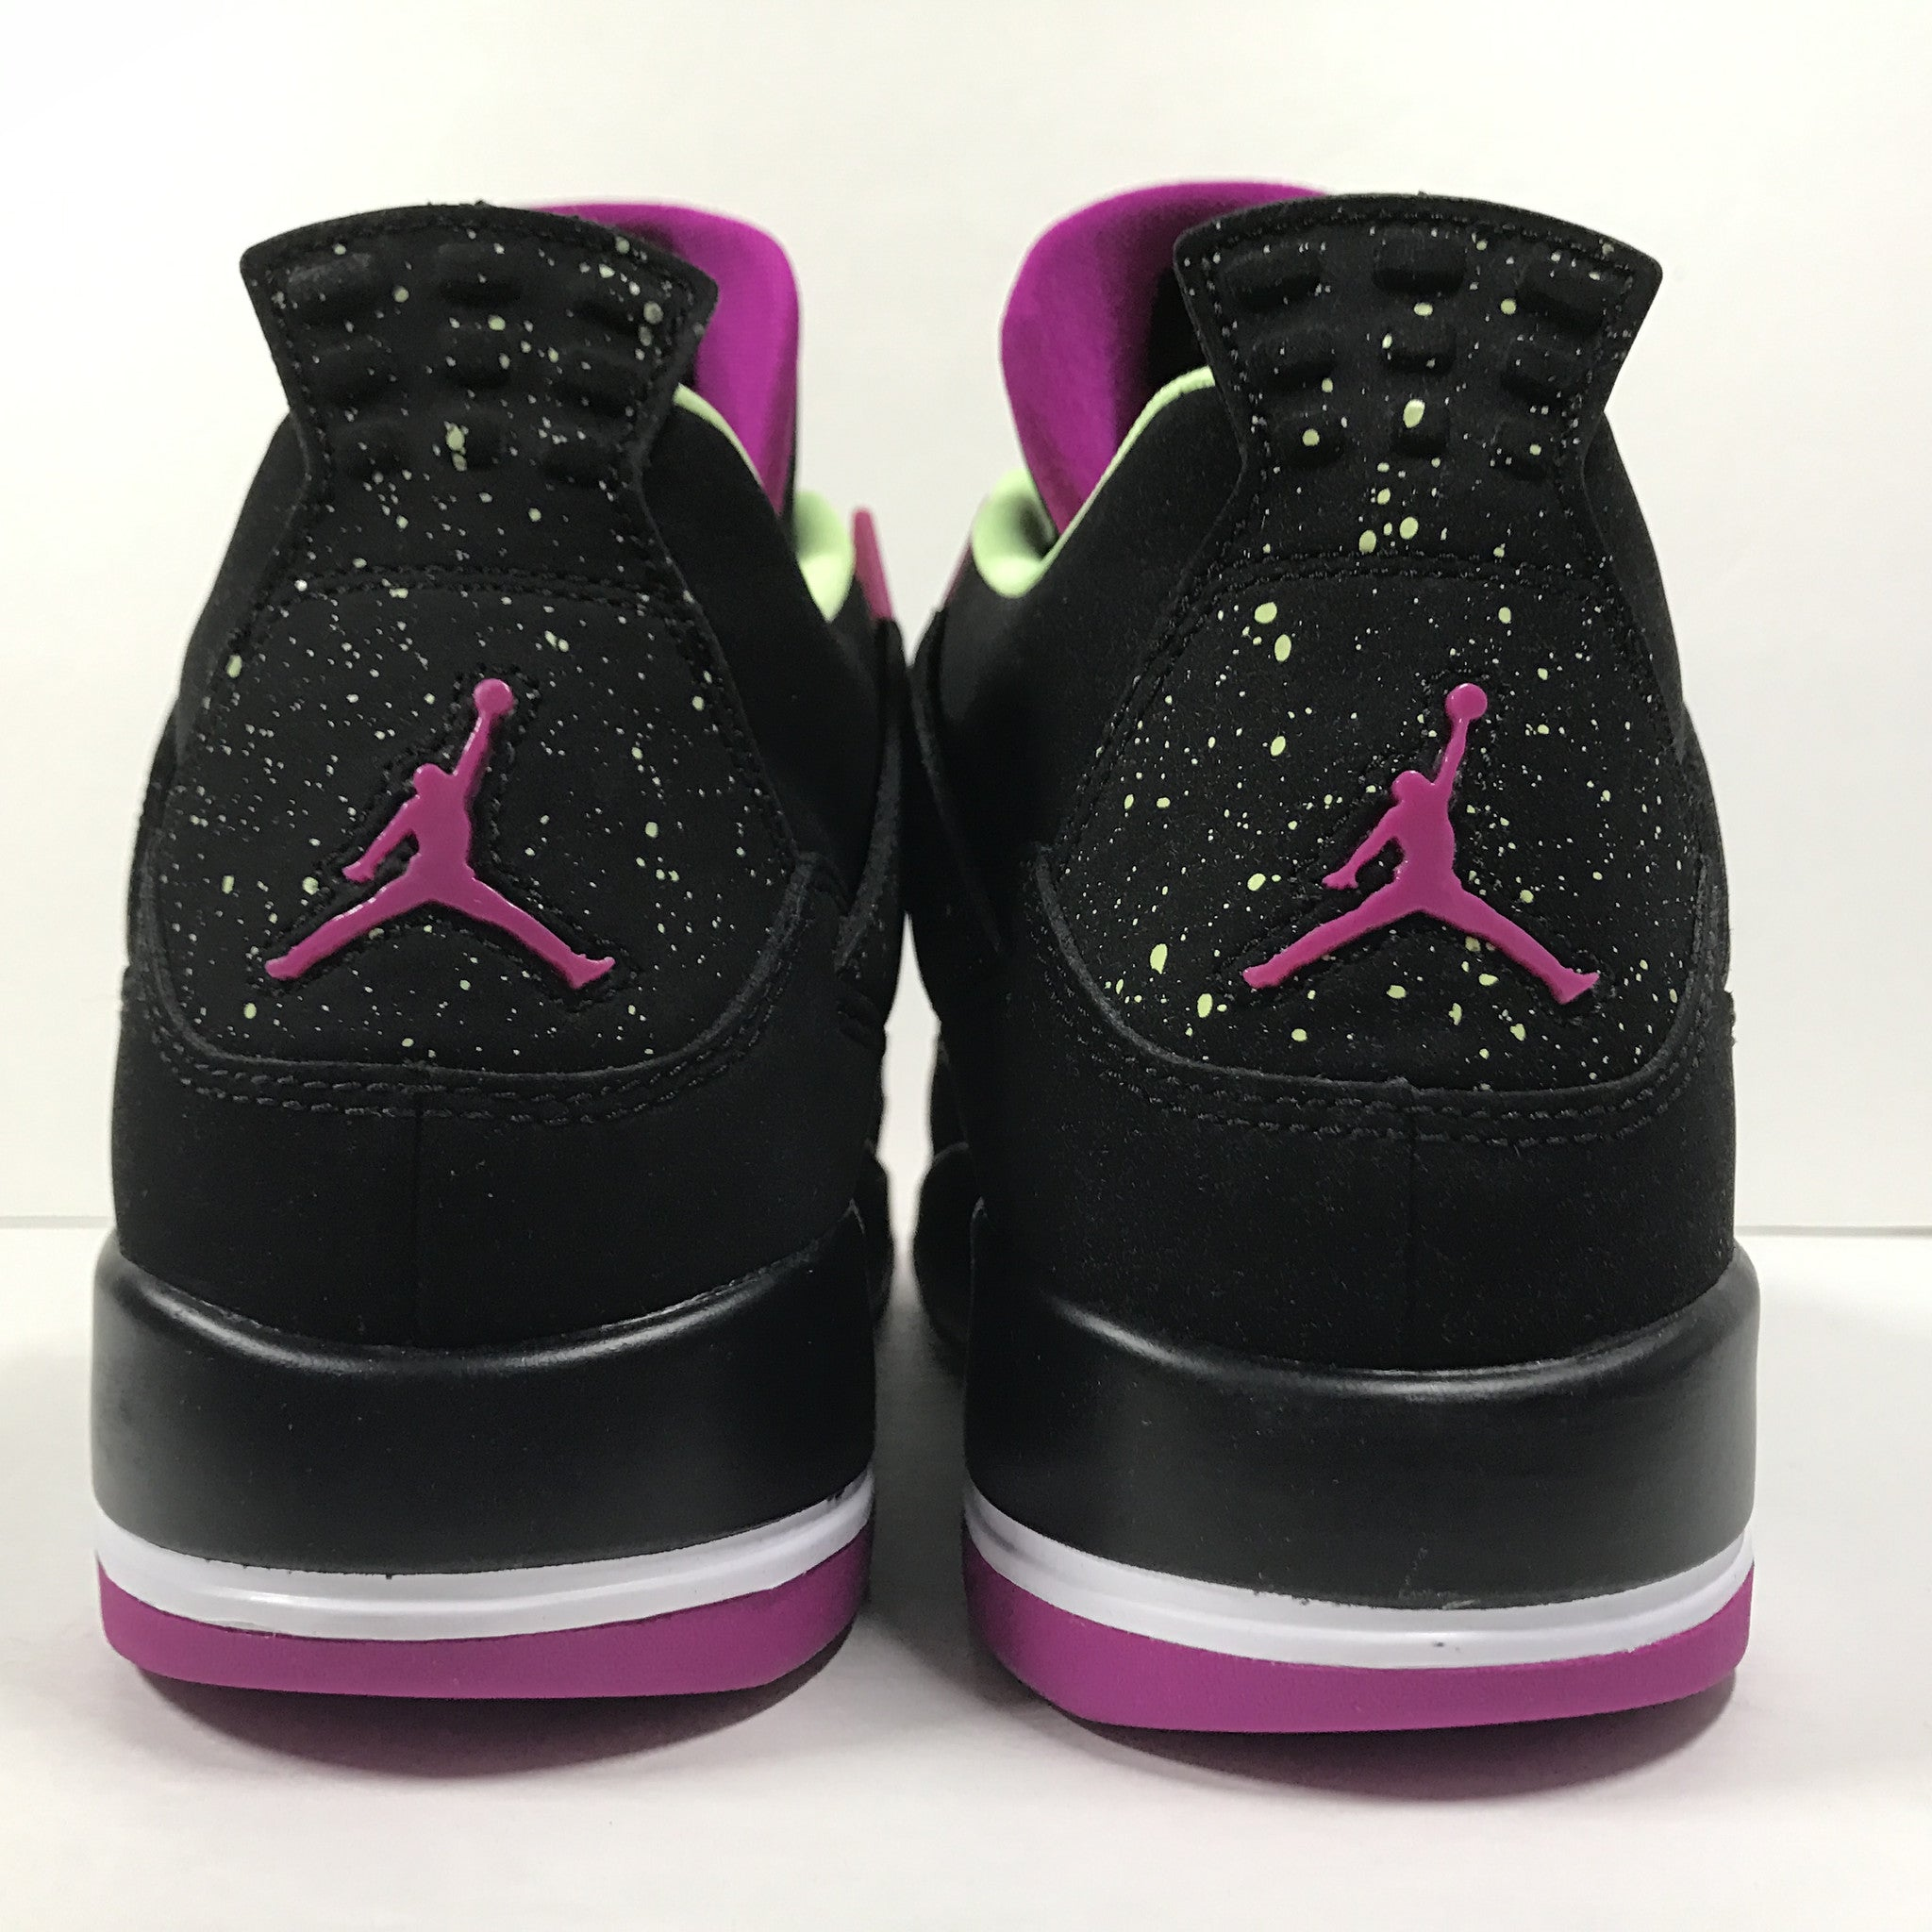 DS Nike Air Jordan 4 IV Retro 30th GG Black/Fuchscia Size 9Y - DOPEFOOT  - 7